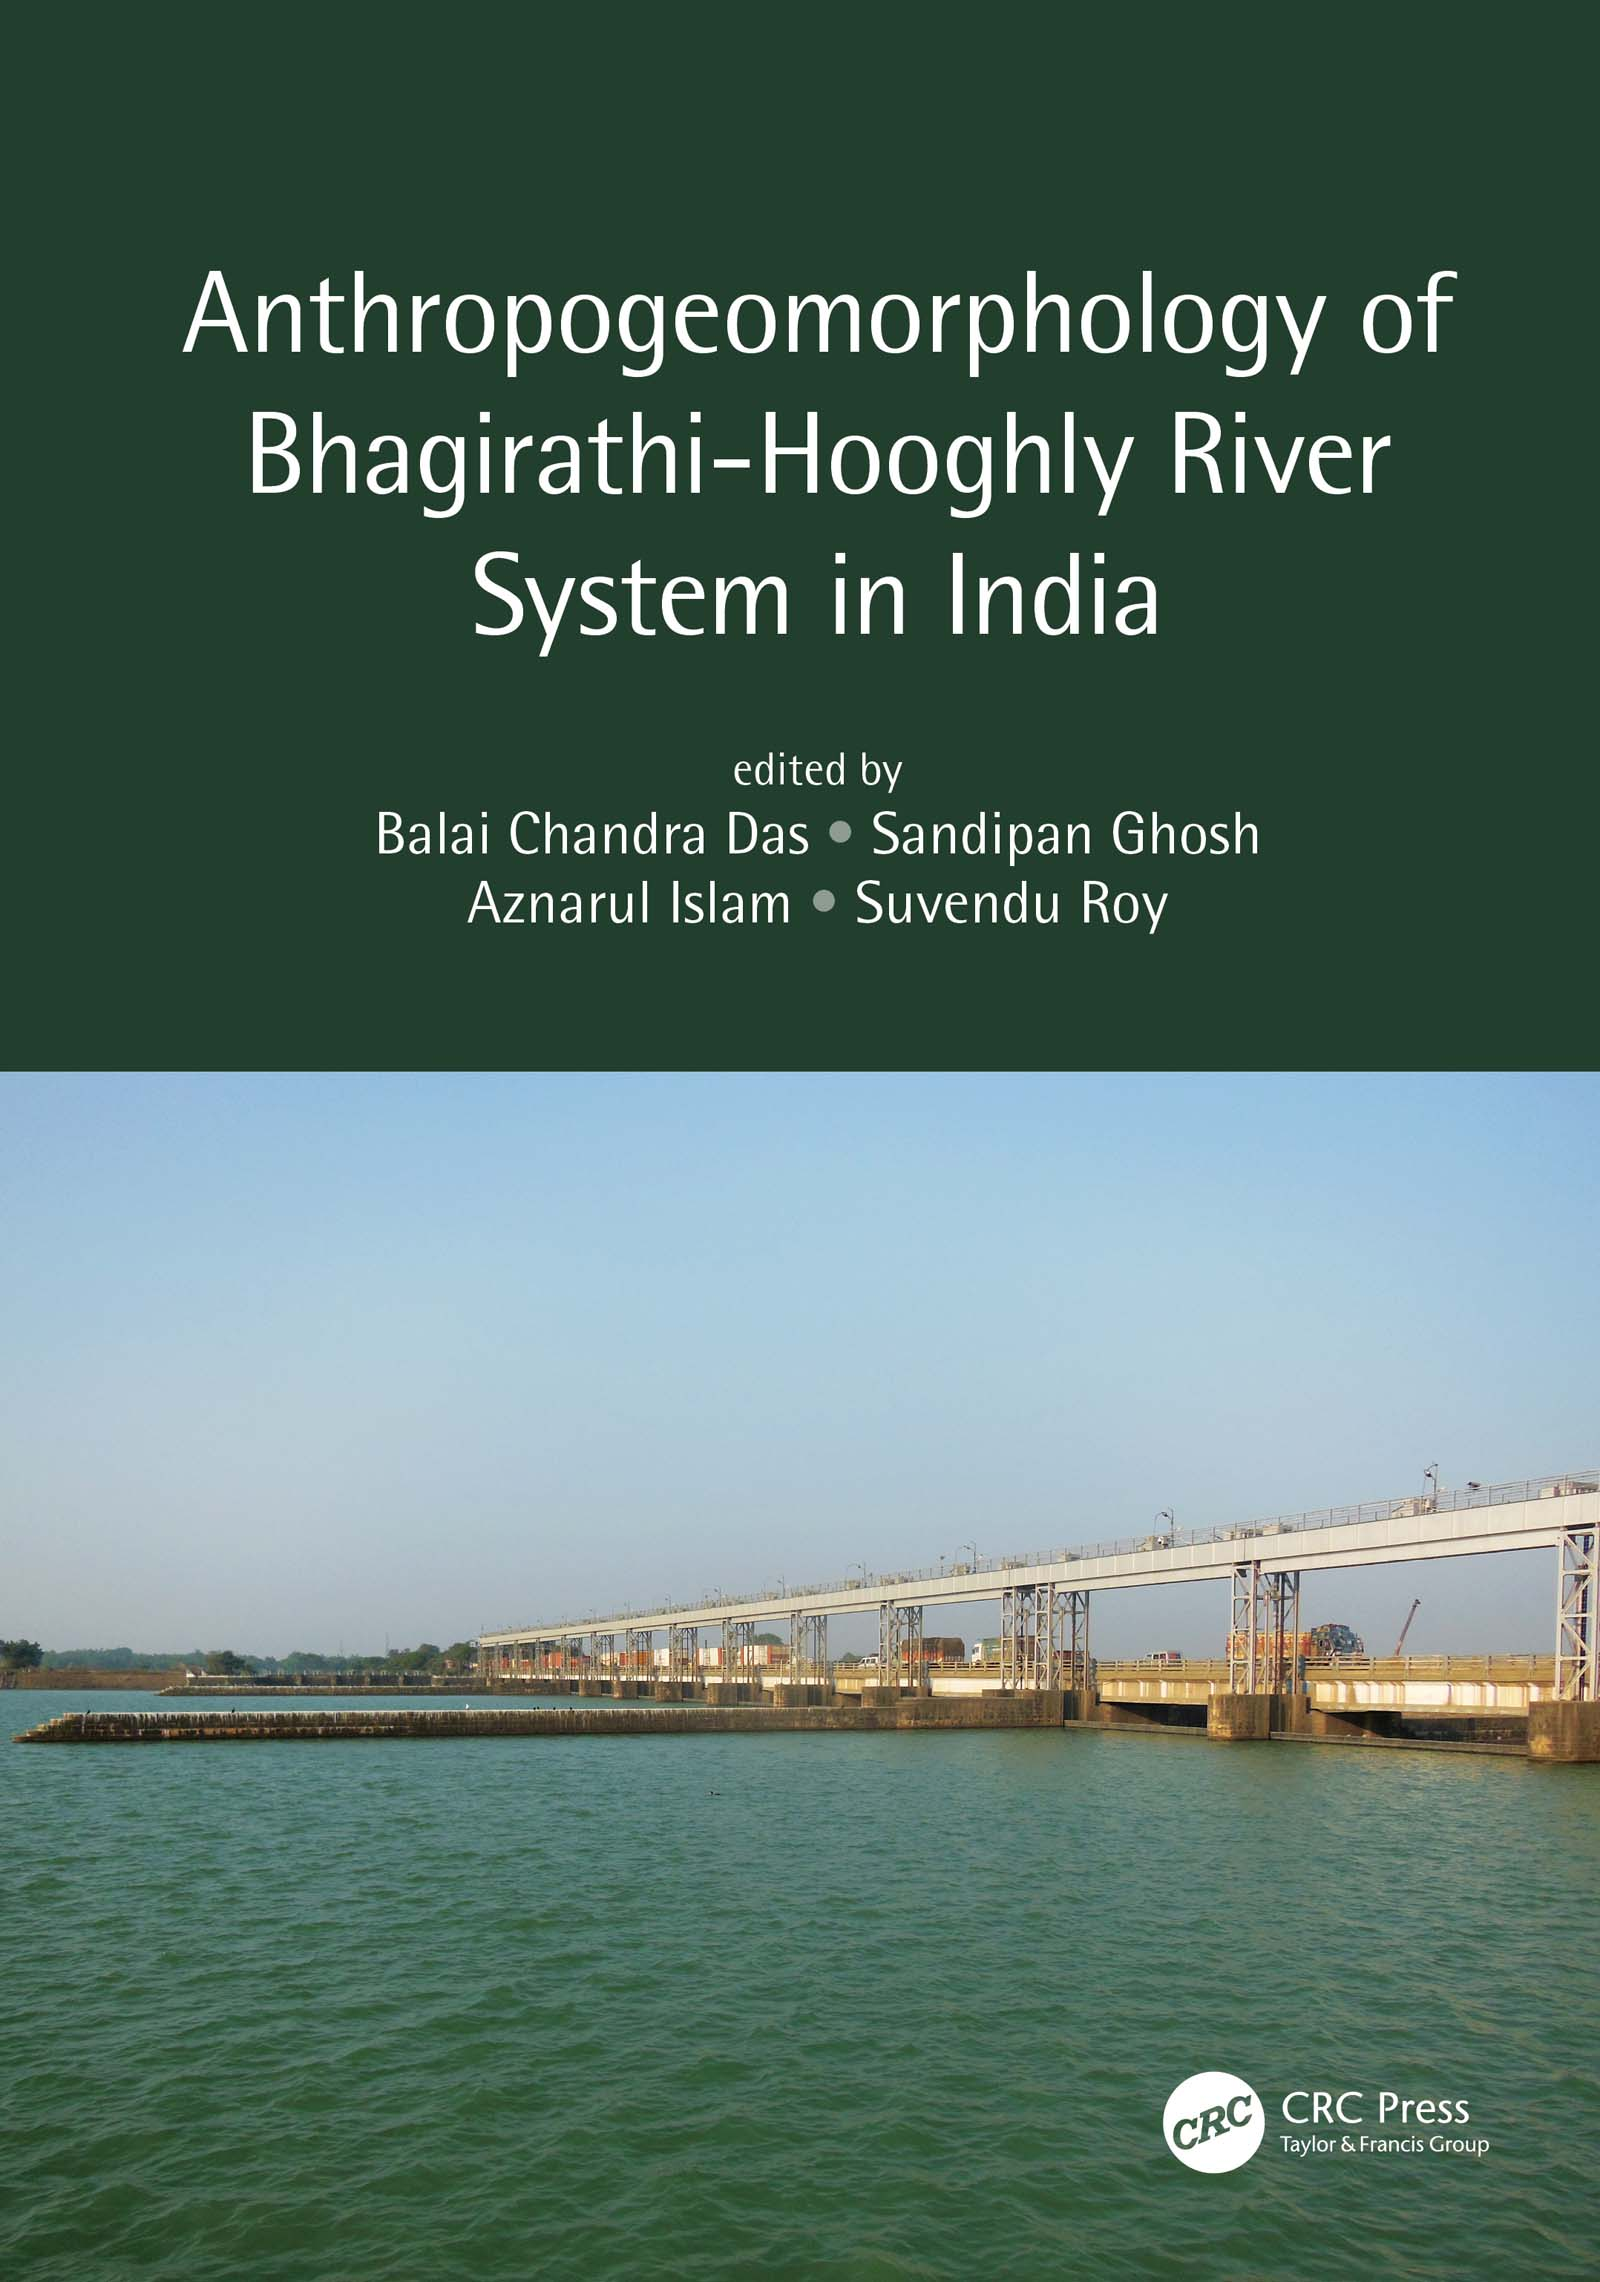 Tidal Morphology and Environmental Consequences of Rasulpur River in the Era of Anthropocene